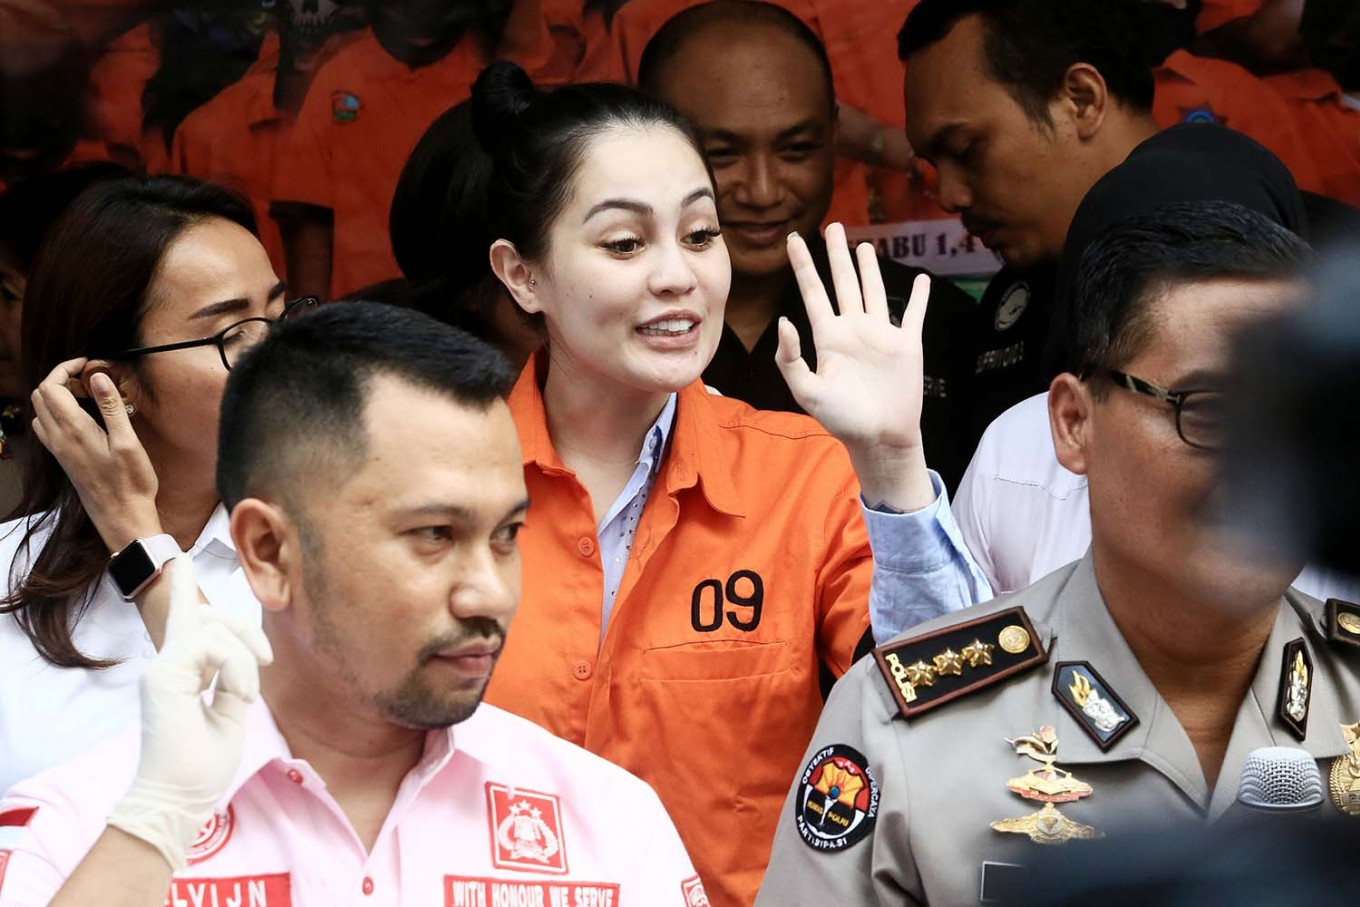 Indonesian Celebrity Cheap indonesian celebrity jennifer dunn arrested for drugs - city - the